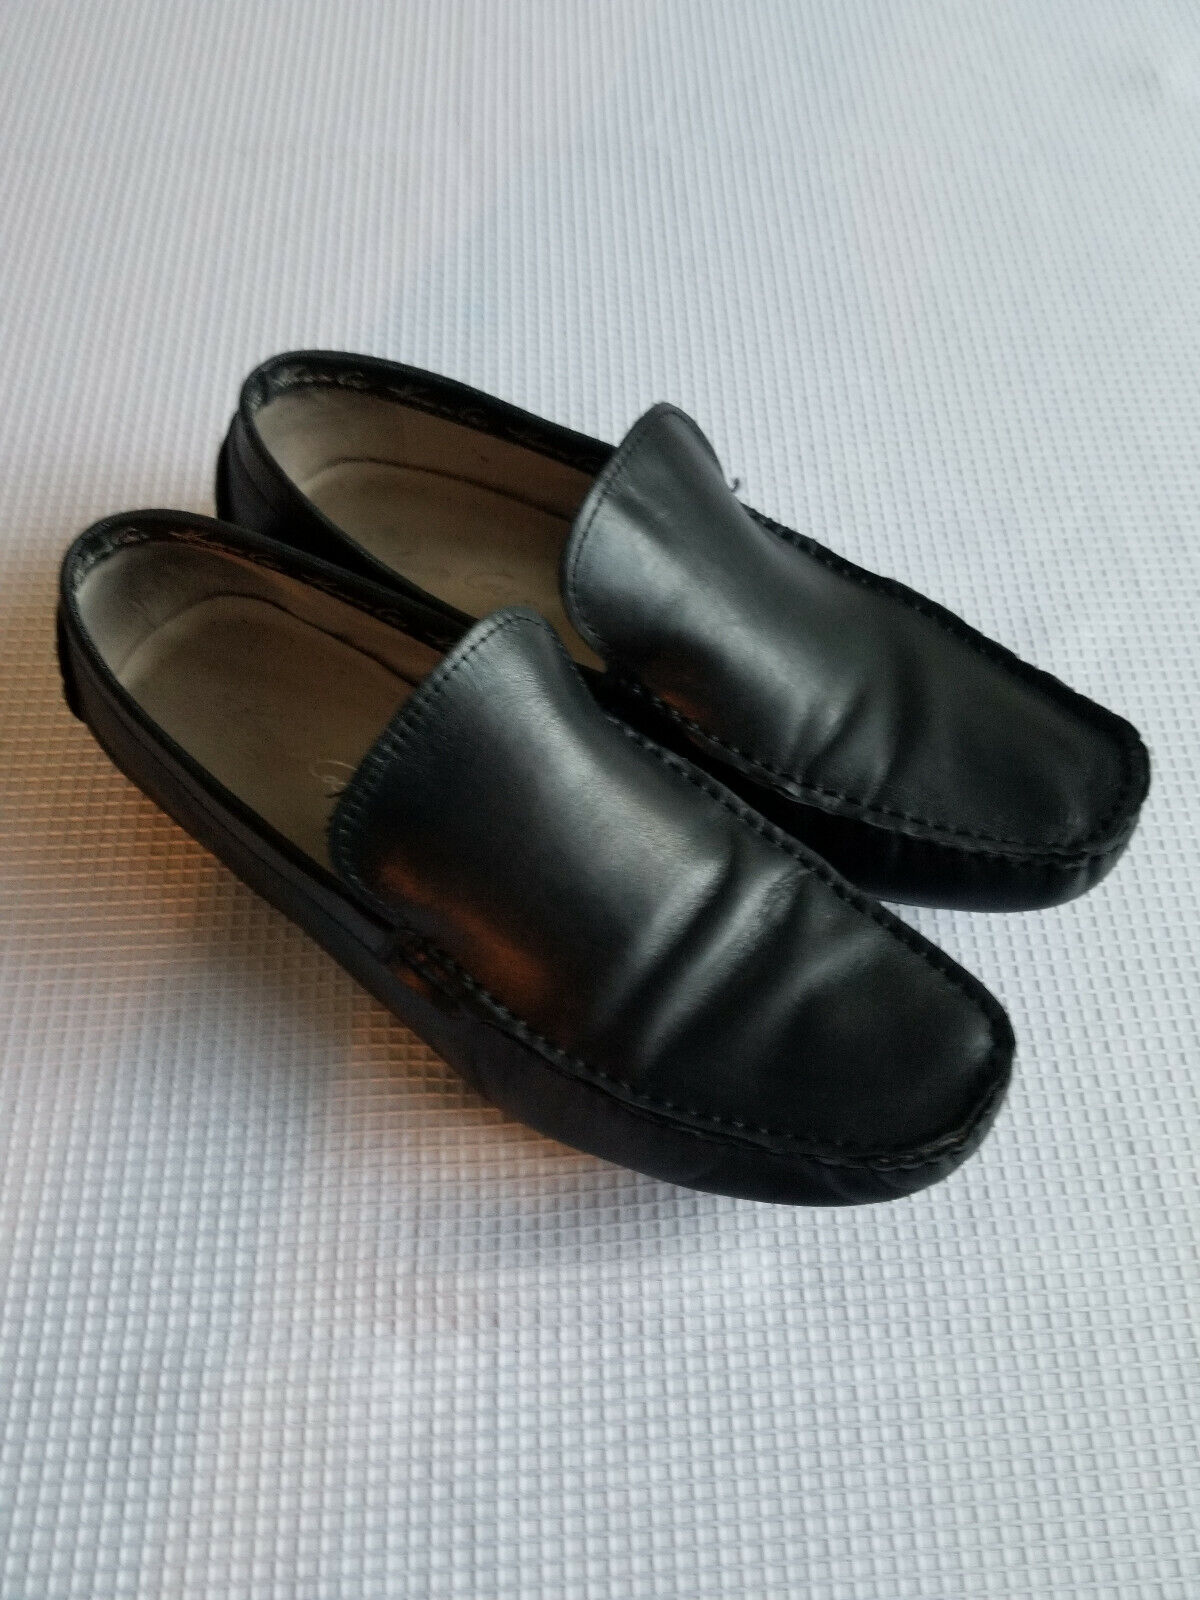 Kenneth Cole Black Leather Casual Loafer Mens 10 Medium